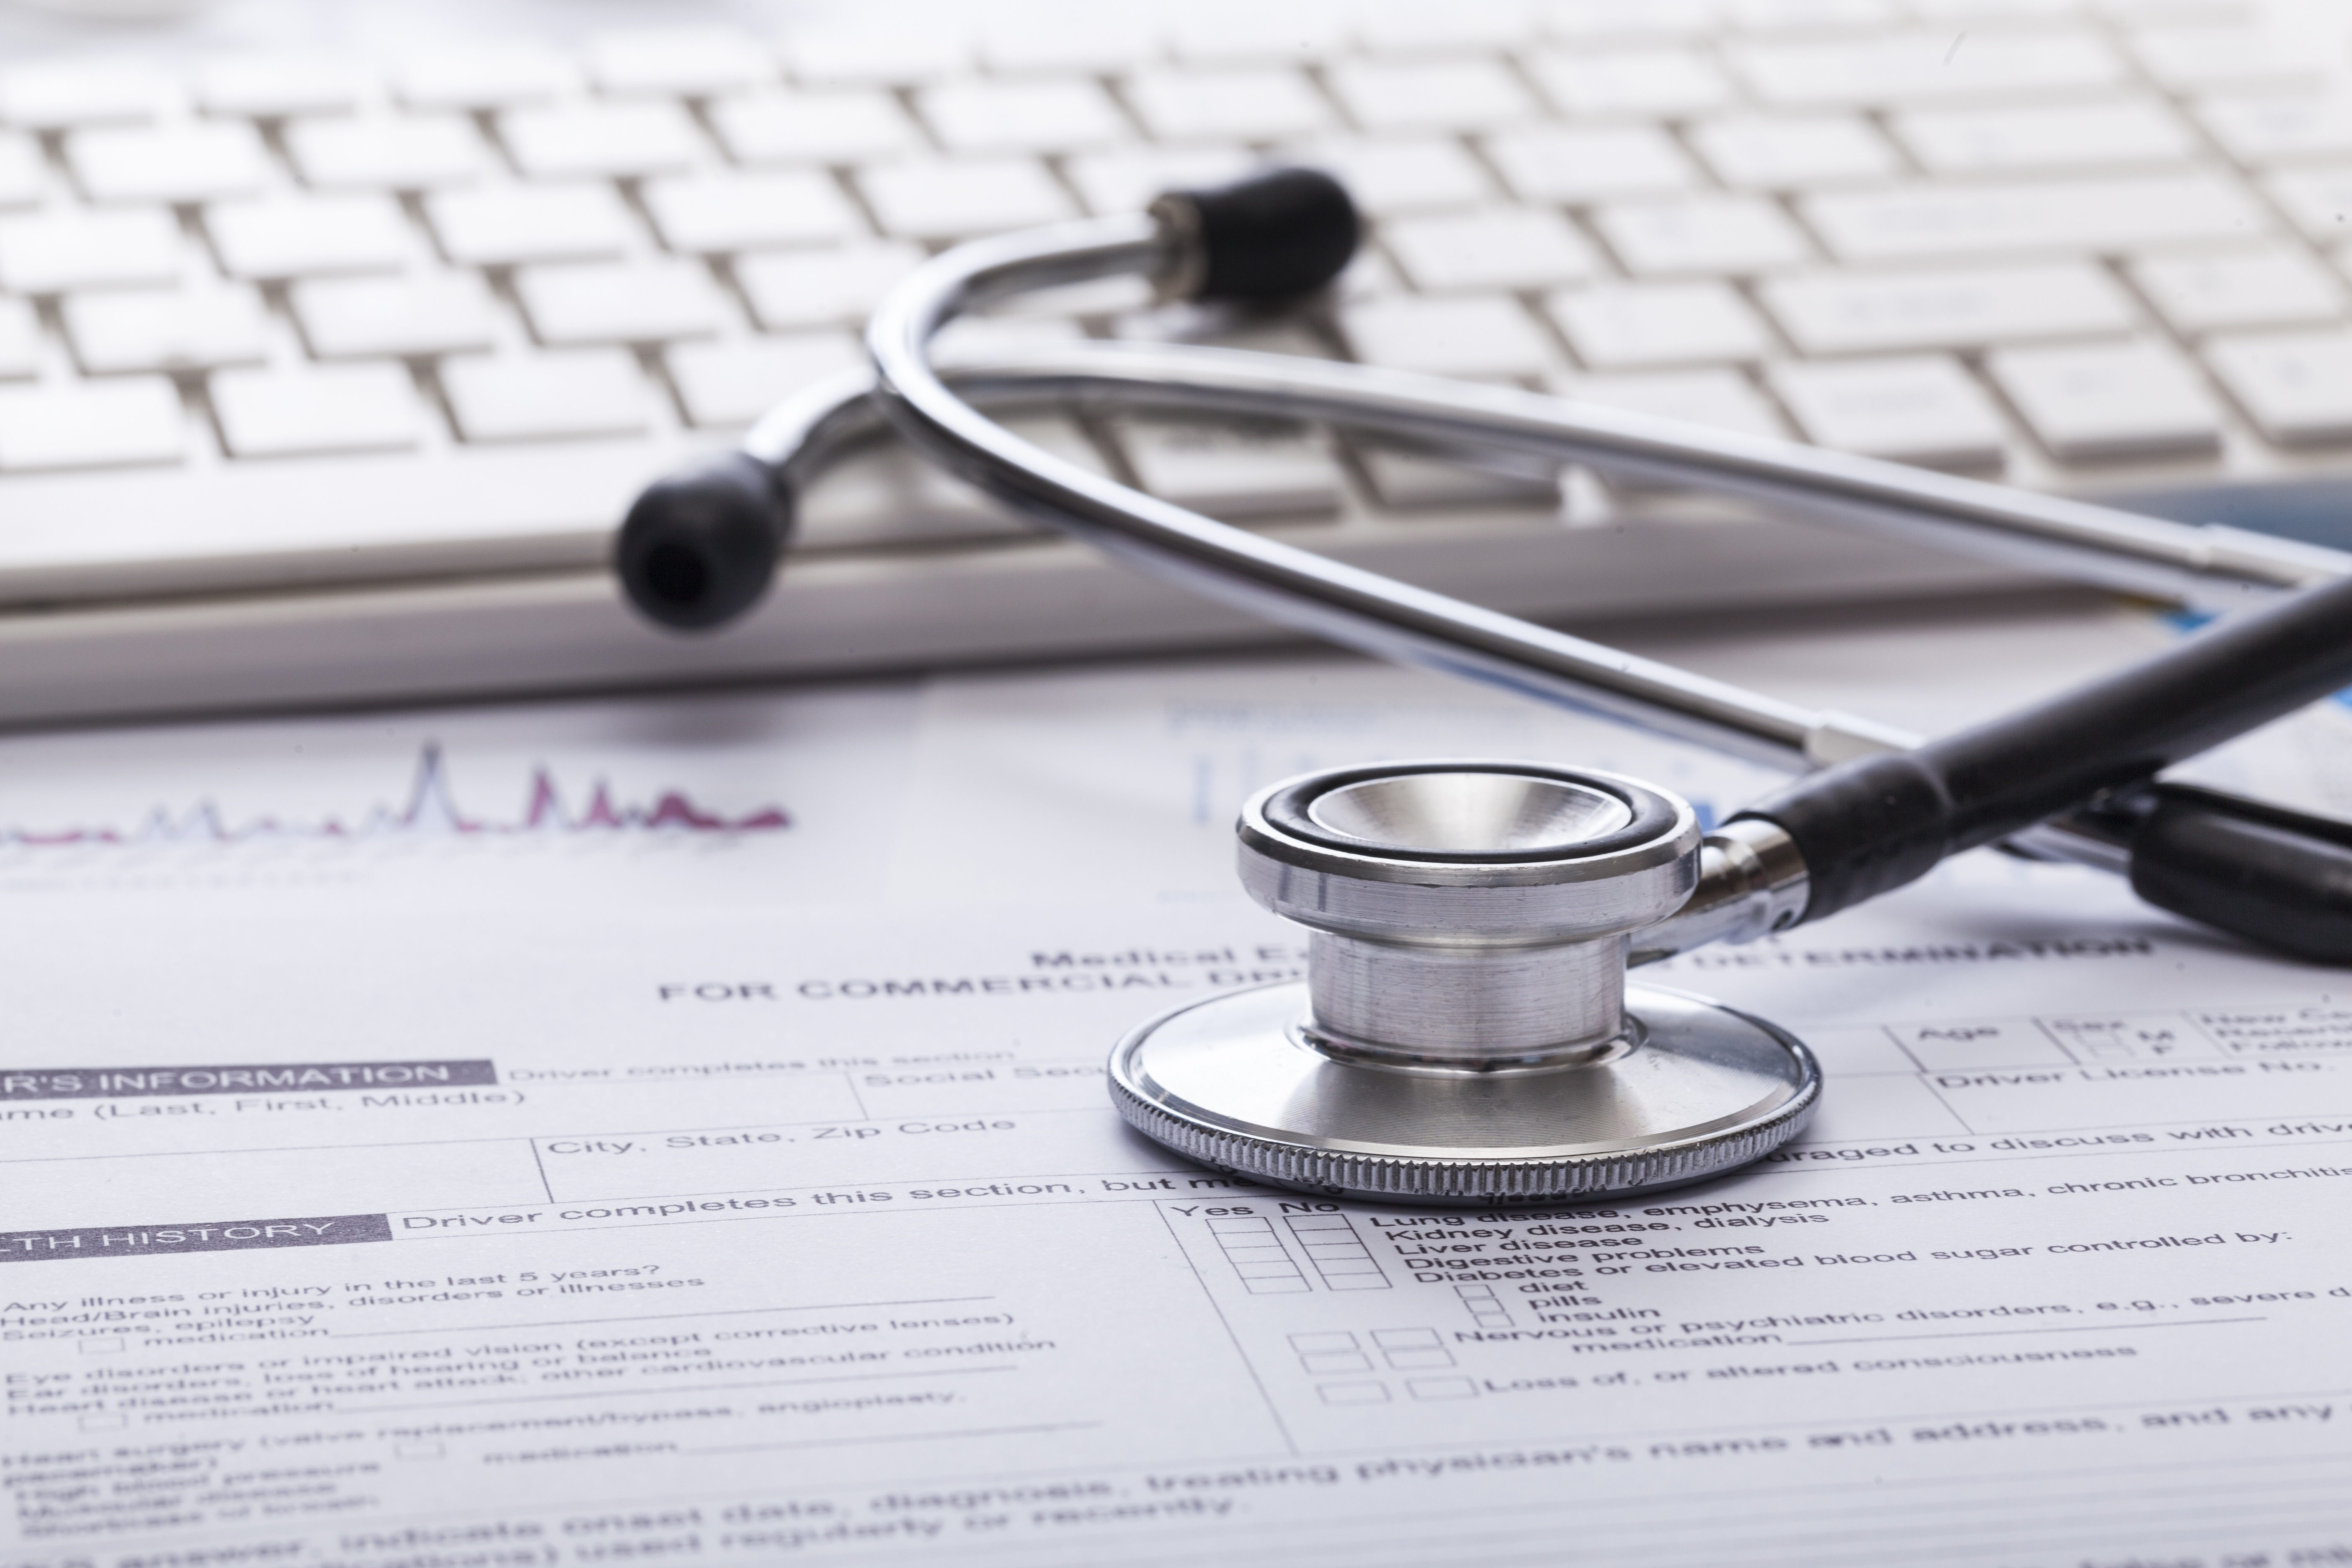 EMS ePCR Software Helps Maintain Compliance